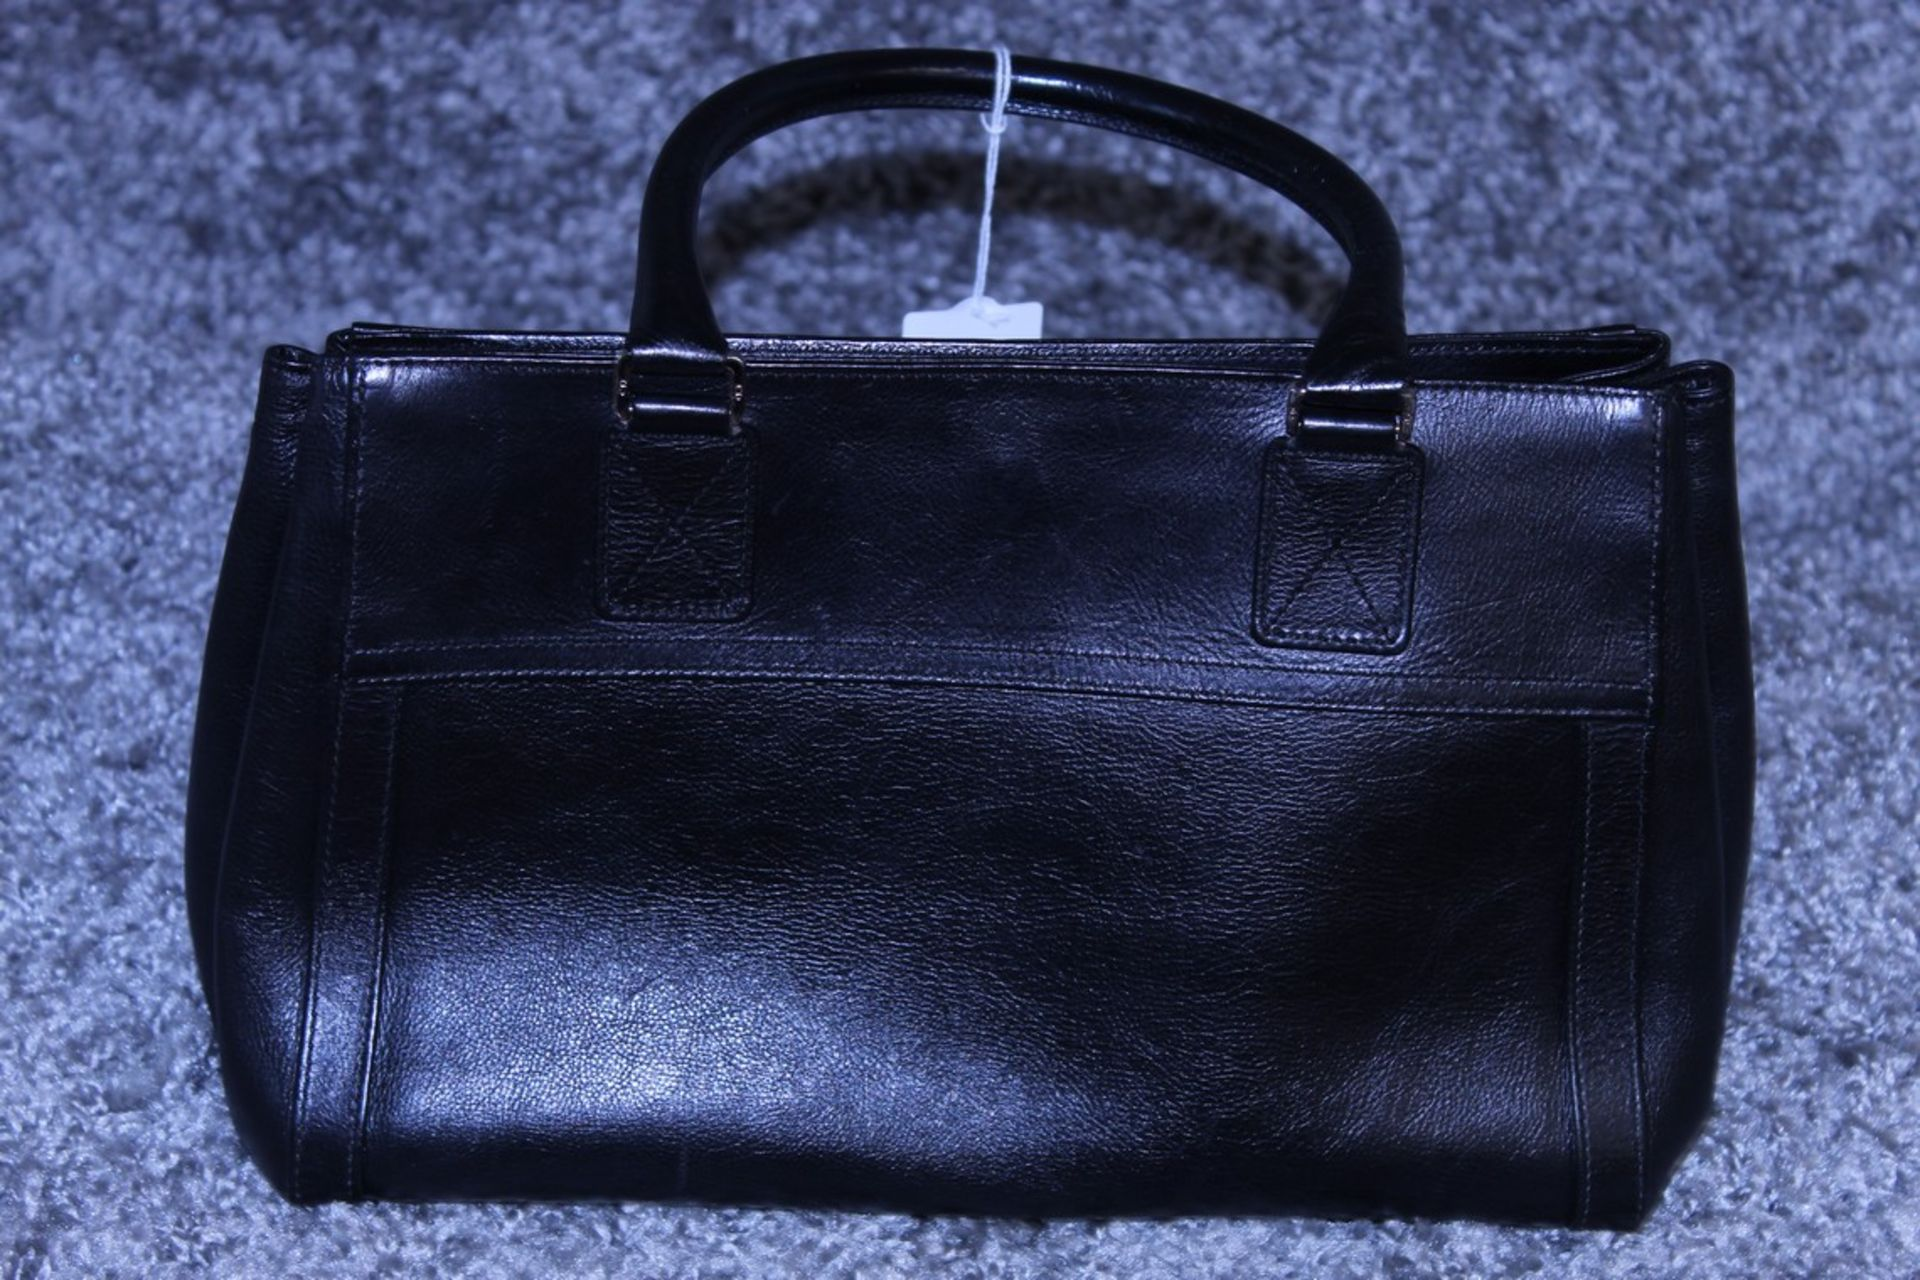 RRP £1300 Dior Interlocking D Belt Handbag In Black Calf Leather With Black Leather Handles. ( - Image 2 of 6